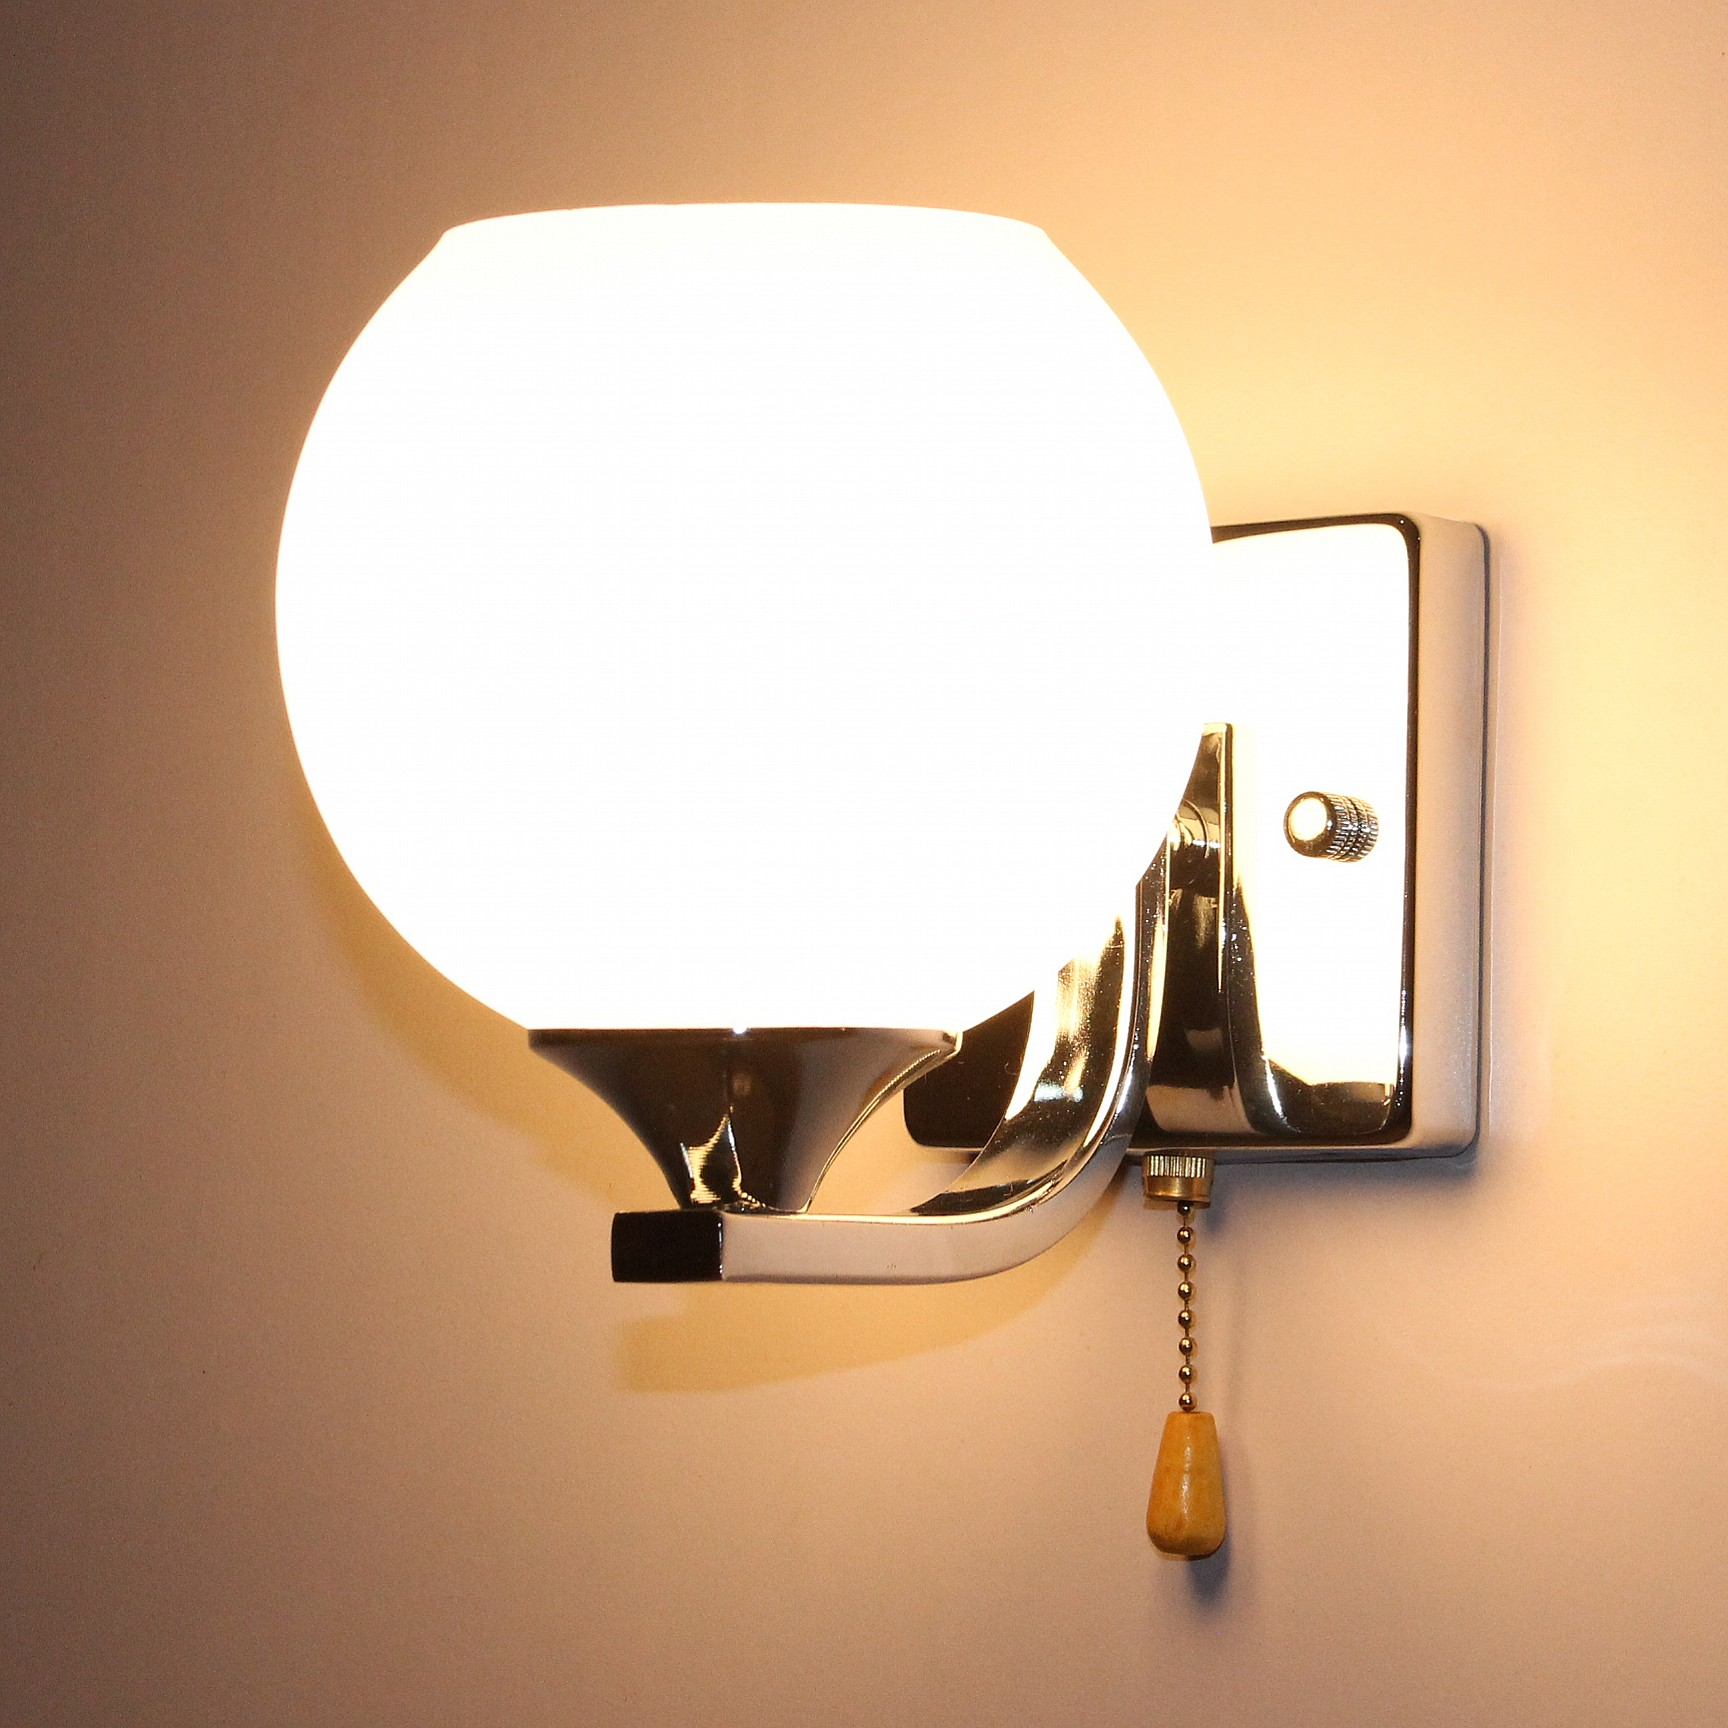 Wall Sconces No Wiring : Get the STYLISH HOME and ROYAL LOOK with Wiring wall lights Warisan Lighting